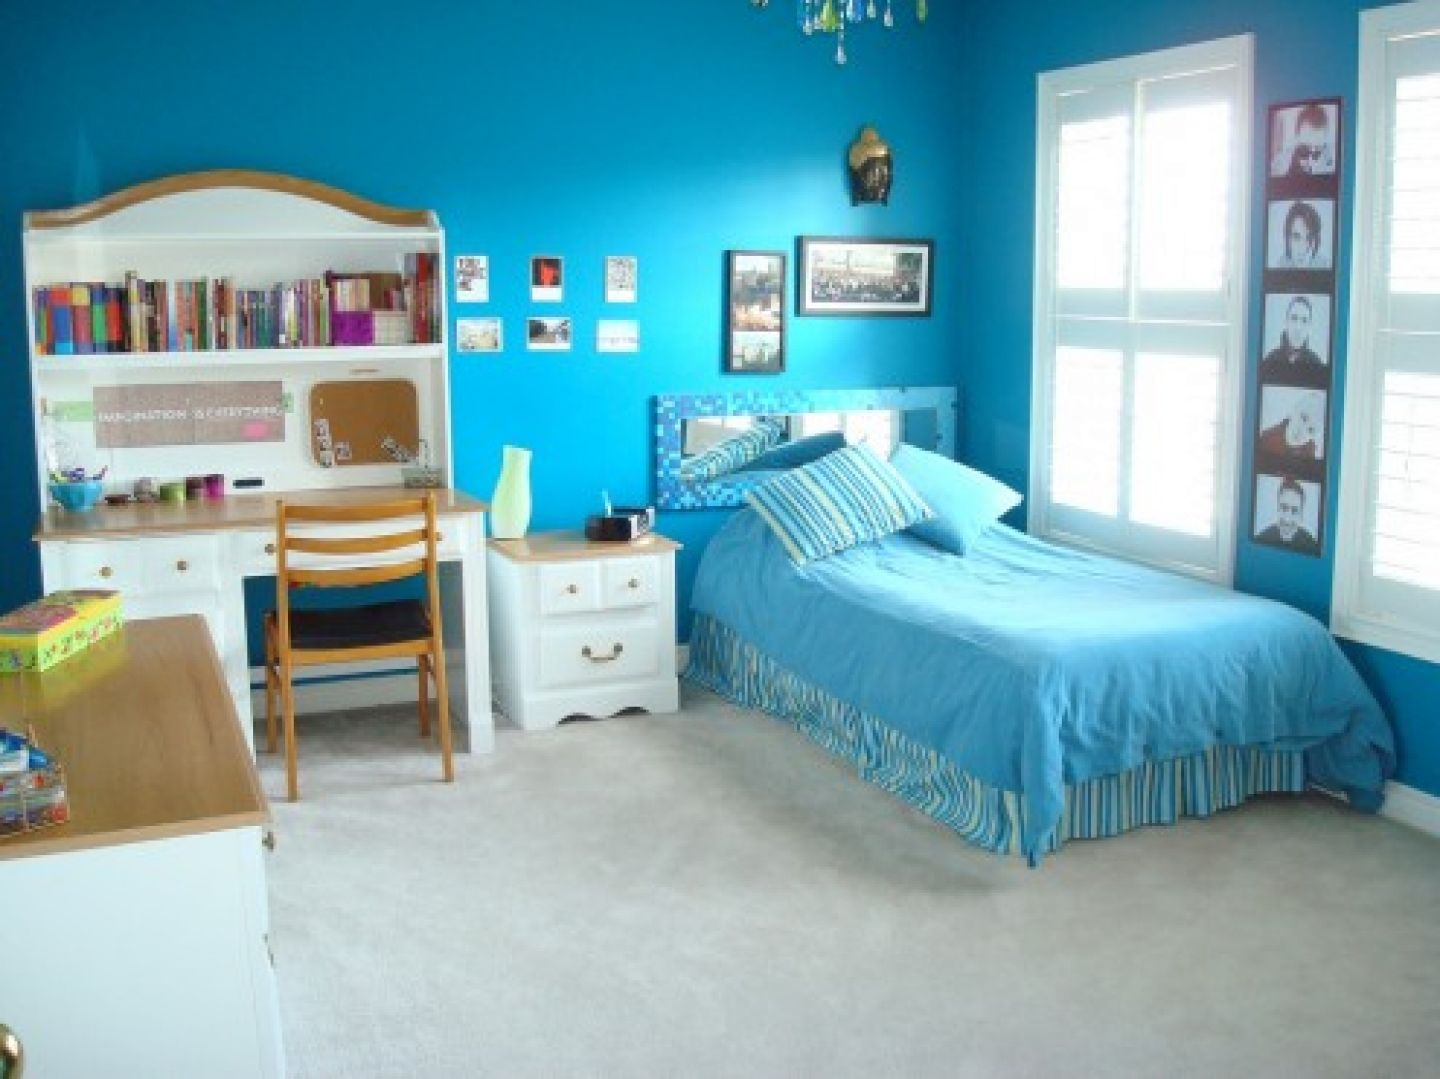 Bedroom design ideas for women blue - Awesome Teen Girl Bedroom Decorating Ideas With Blue Bedding